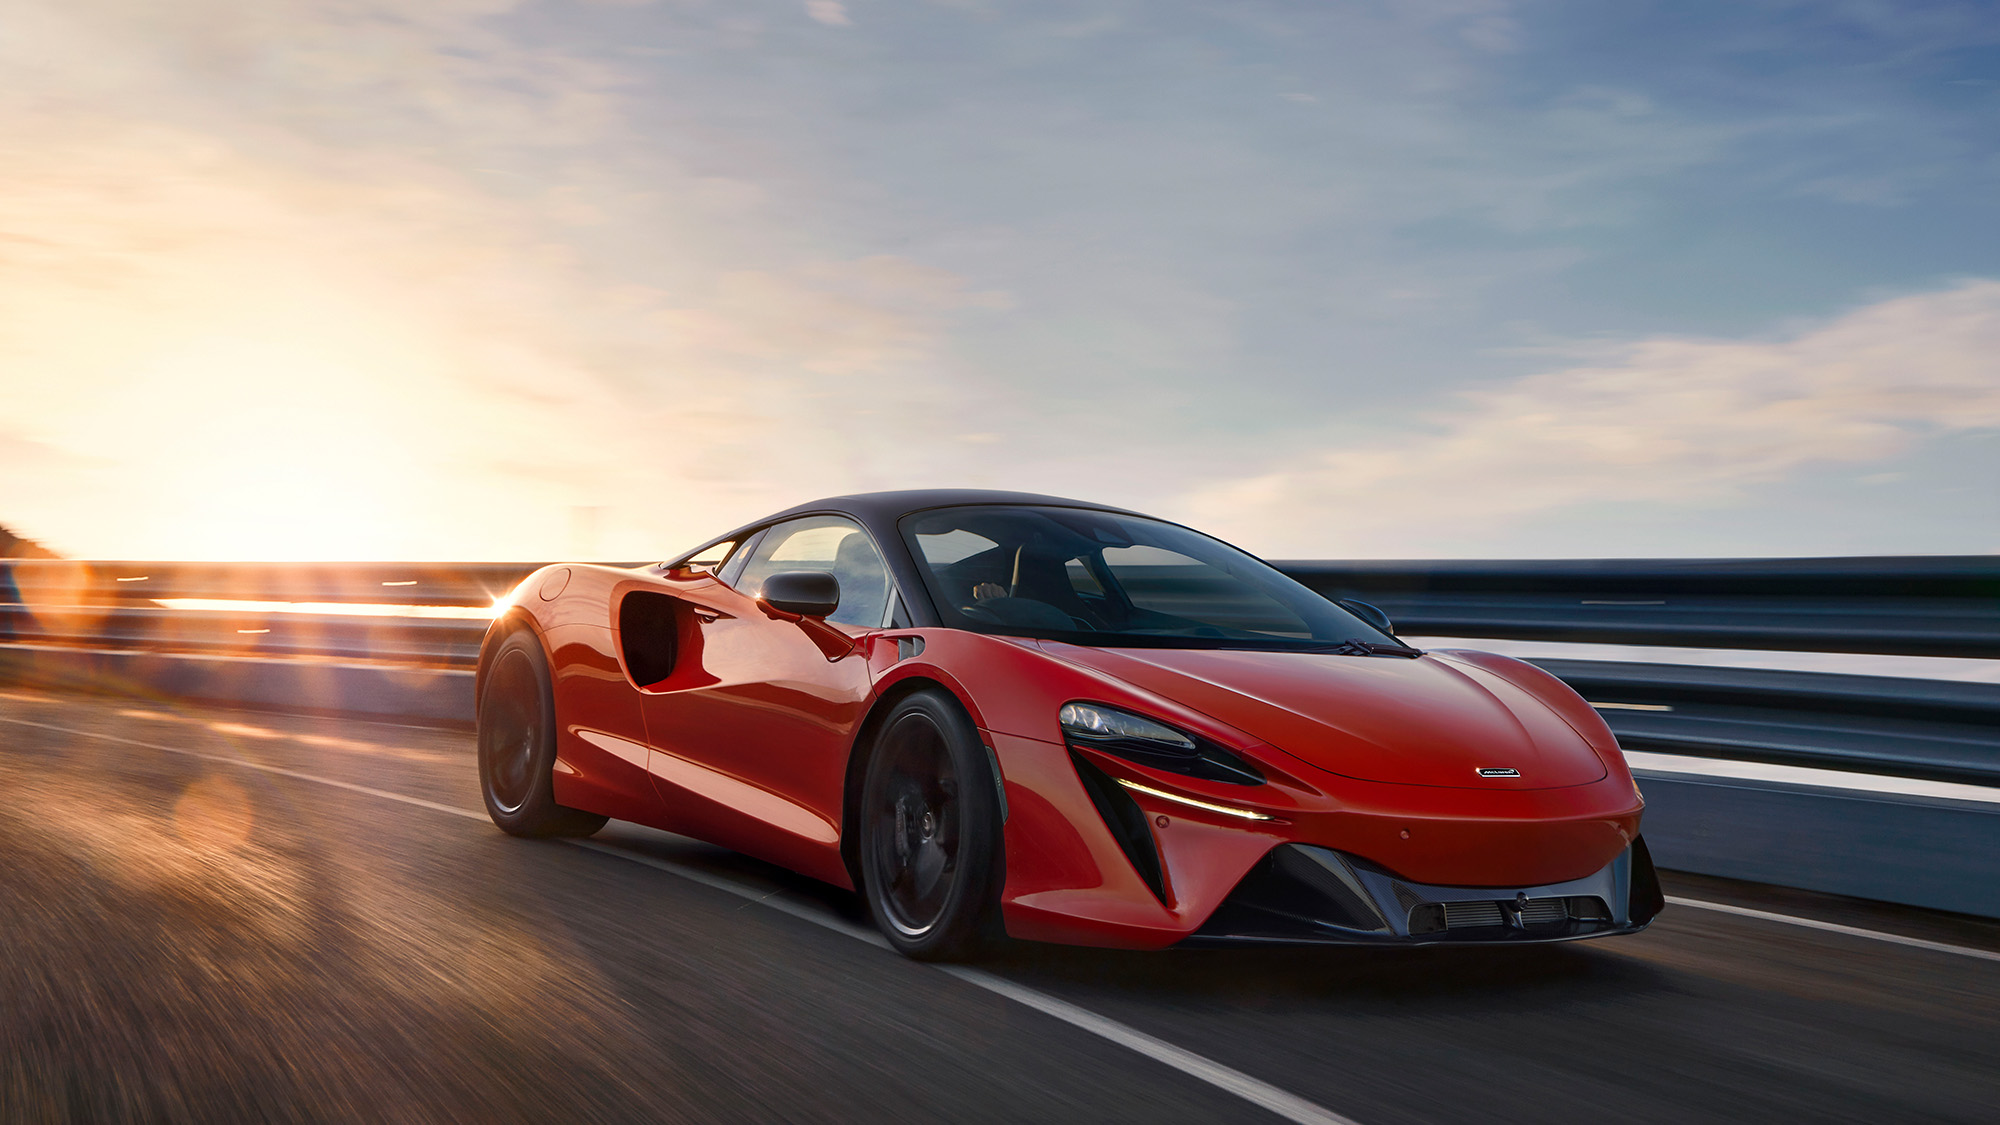 2021 McLaren Artura revealed: why it's critical to the company's future